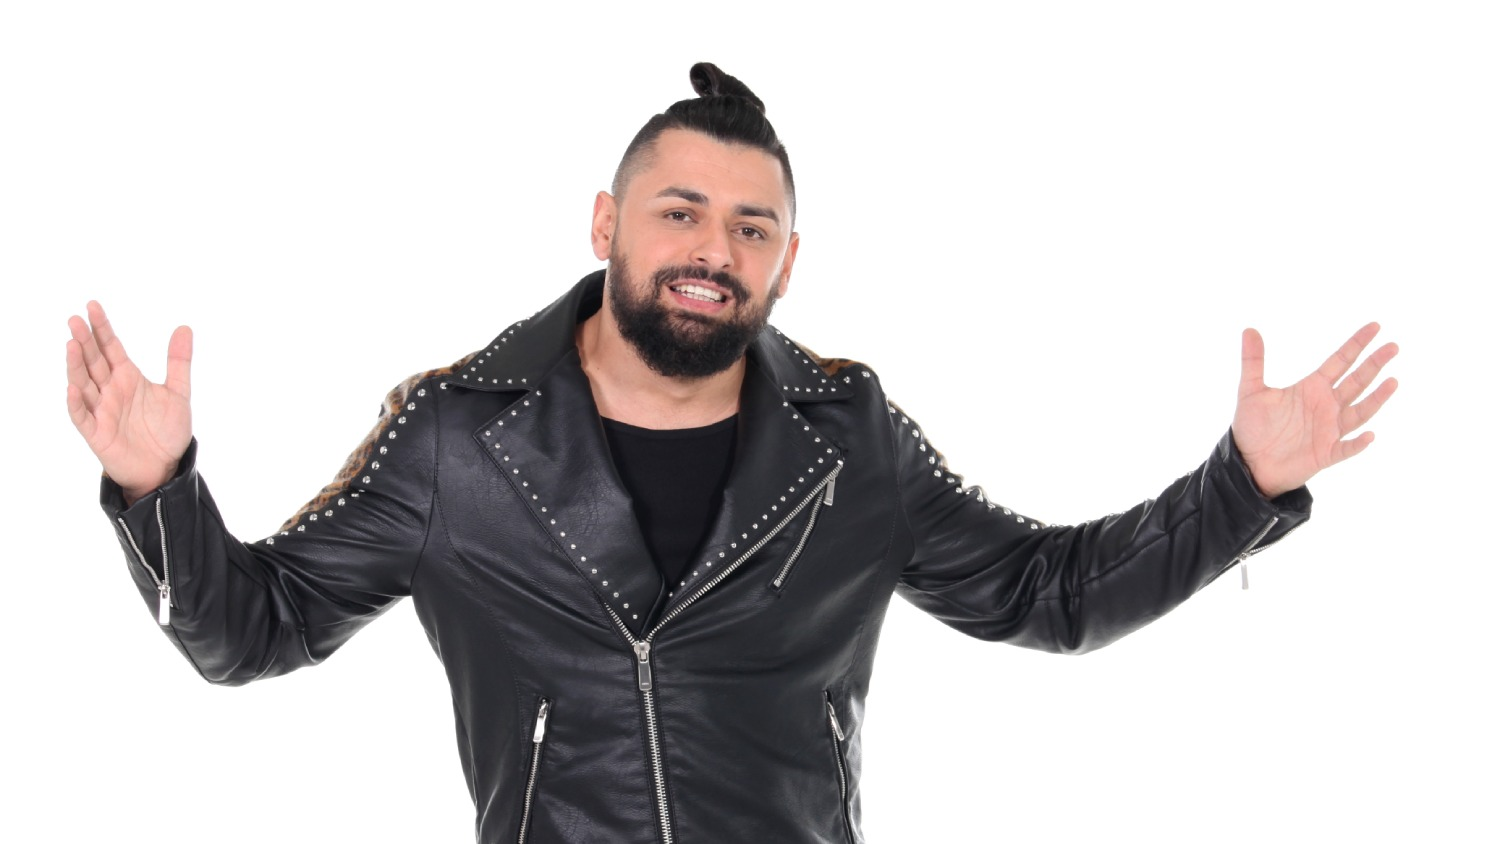 Hungary 2019: All you need to know about Joci Pápai and his entry Az én apám""